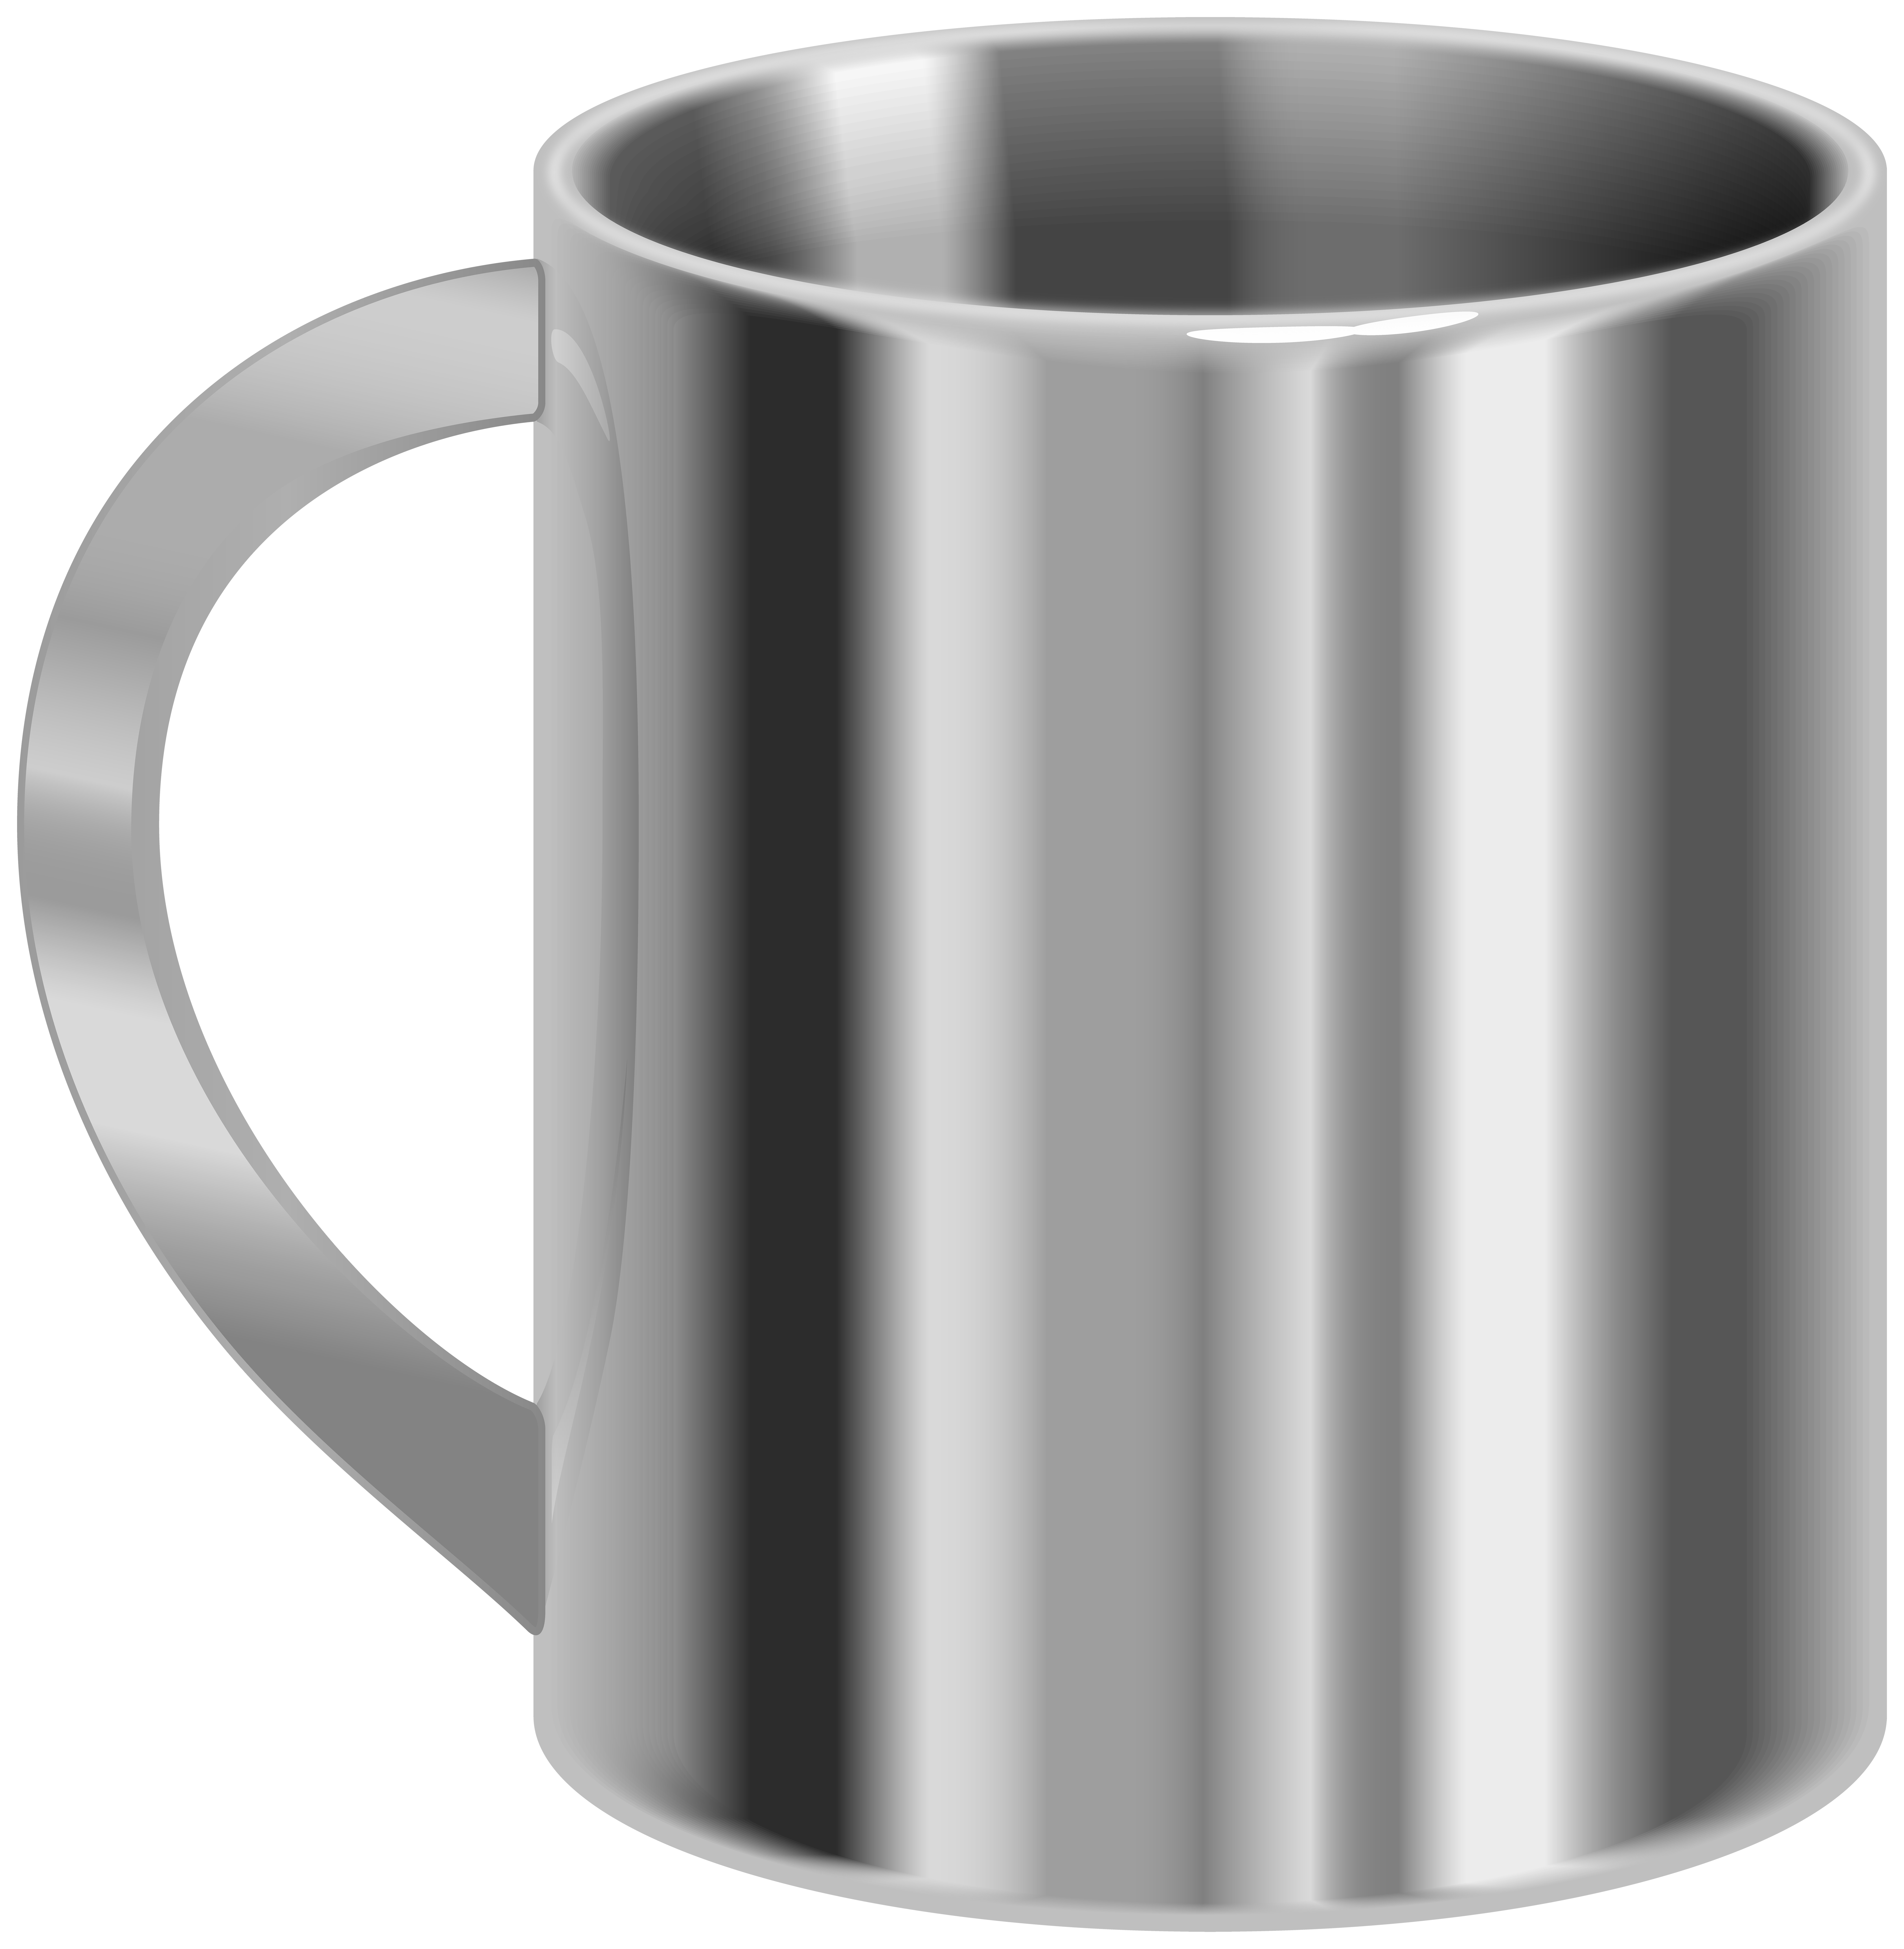 Clipart png com graphic royalty free Stainless Steel Mug PNG Clip Art - Best WEB Clipart graphic royalty free